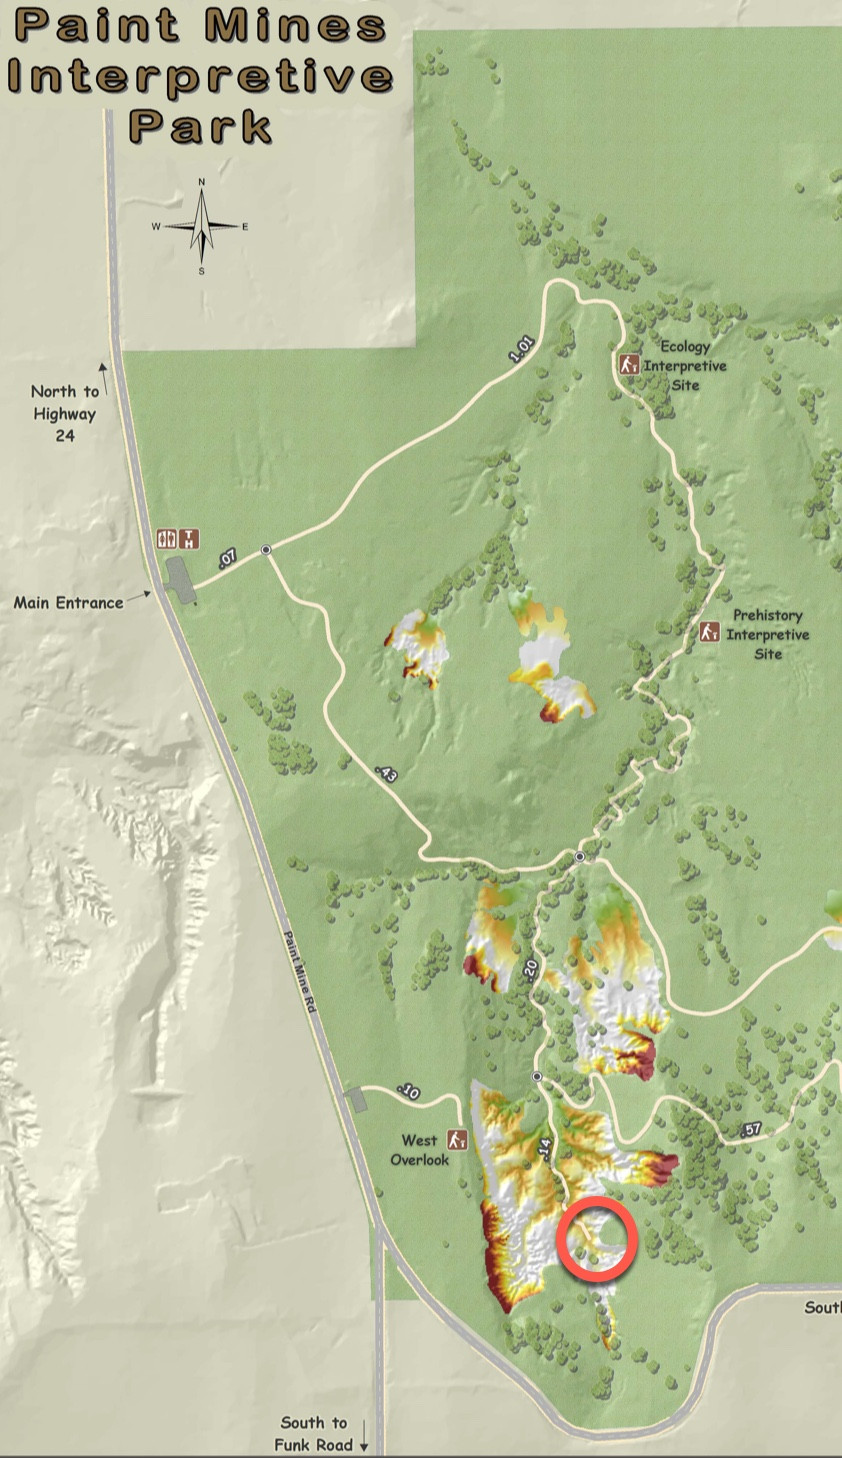 Partial map of the Paint Mines park with elopement ceremony location marked